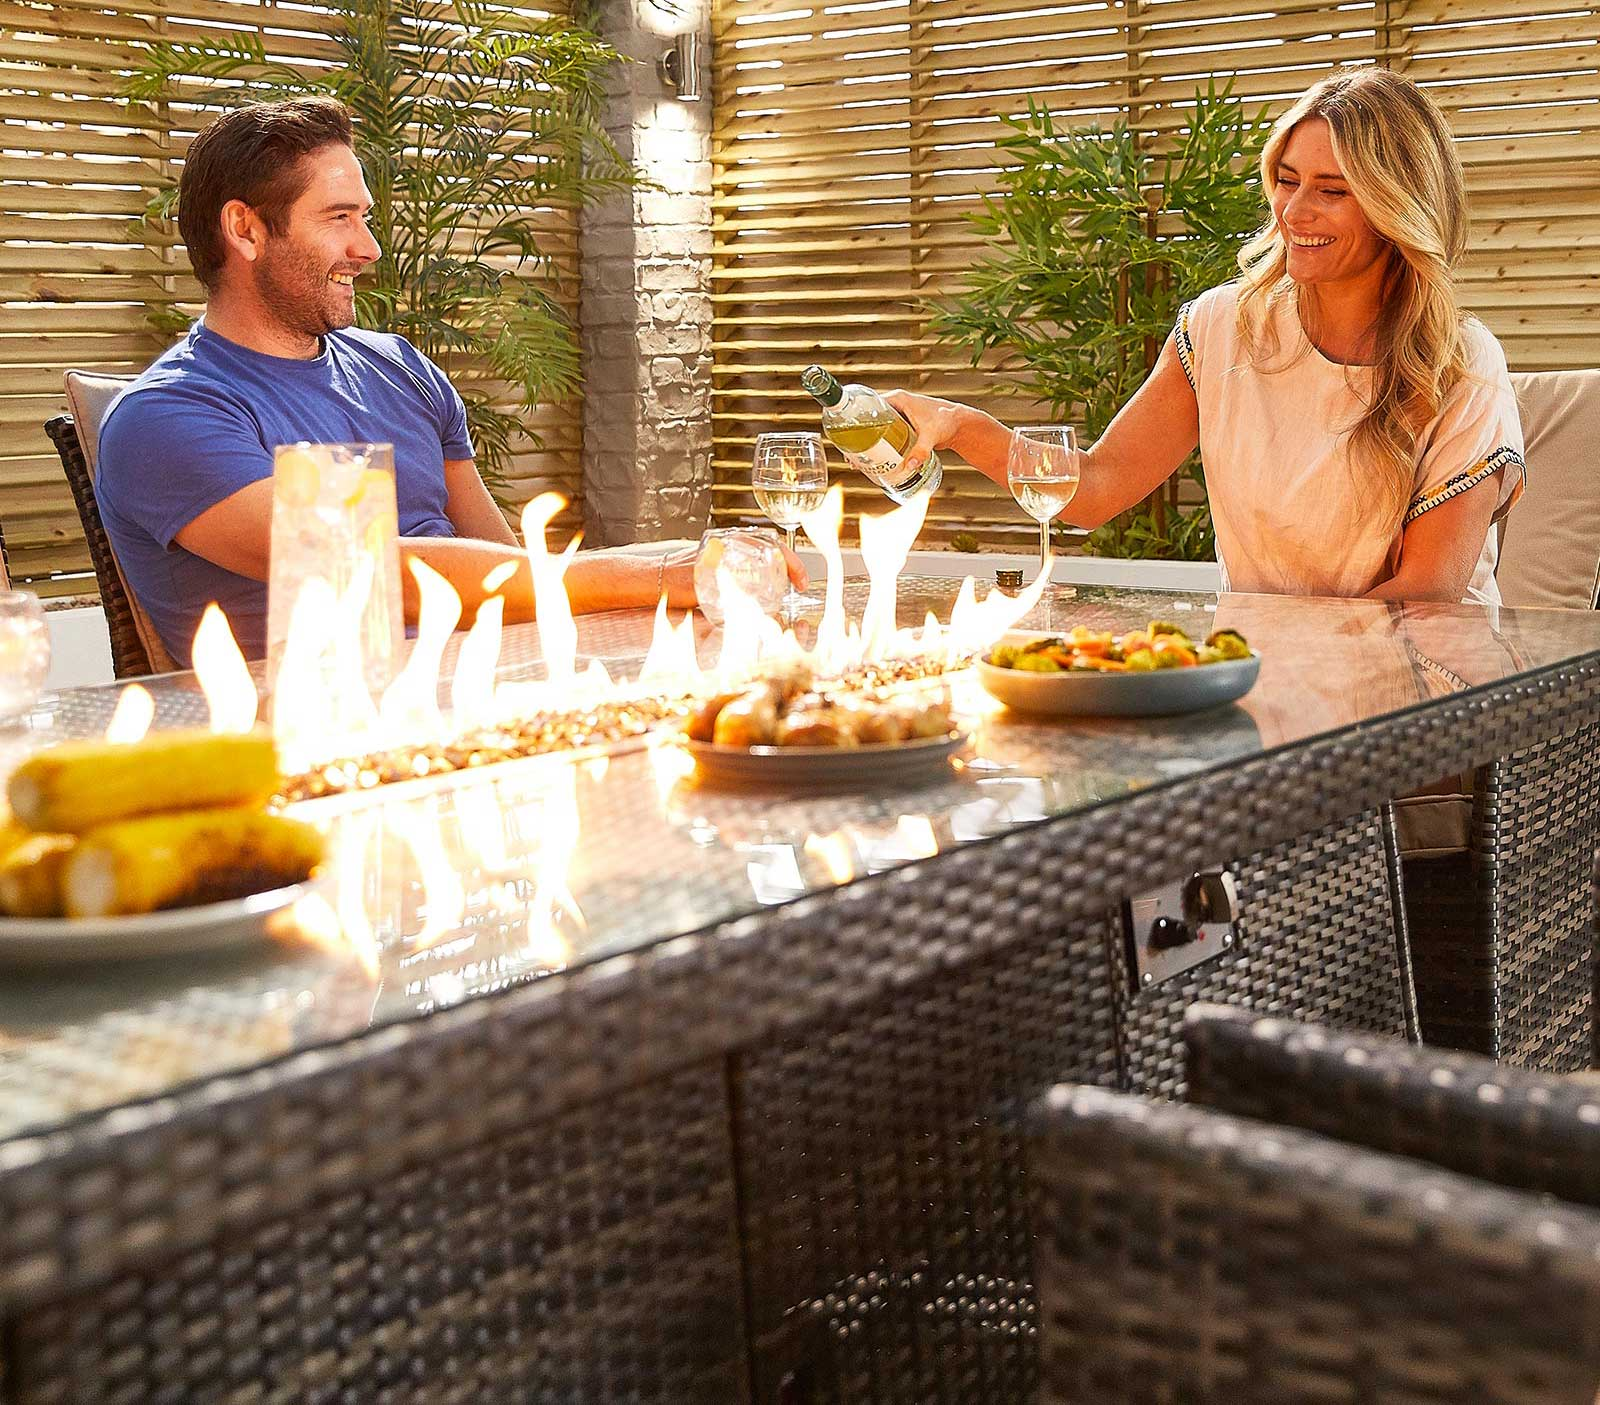 Garden Furniture And Pits London, Home And Garden Furniture